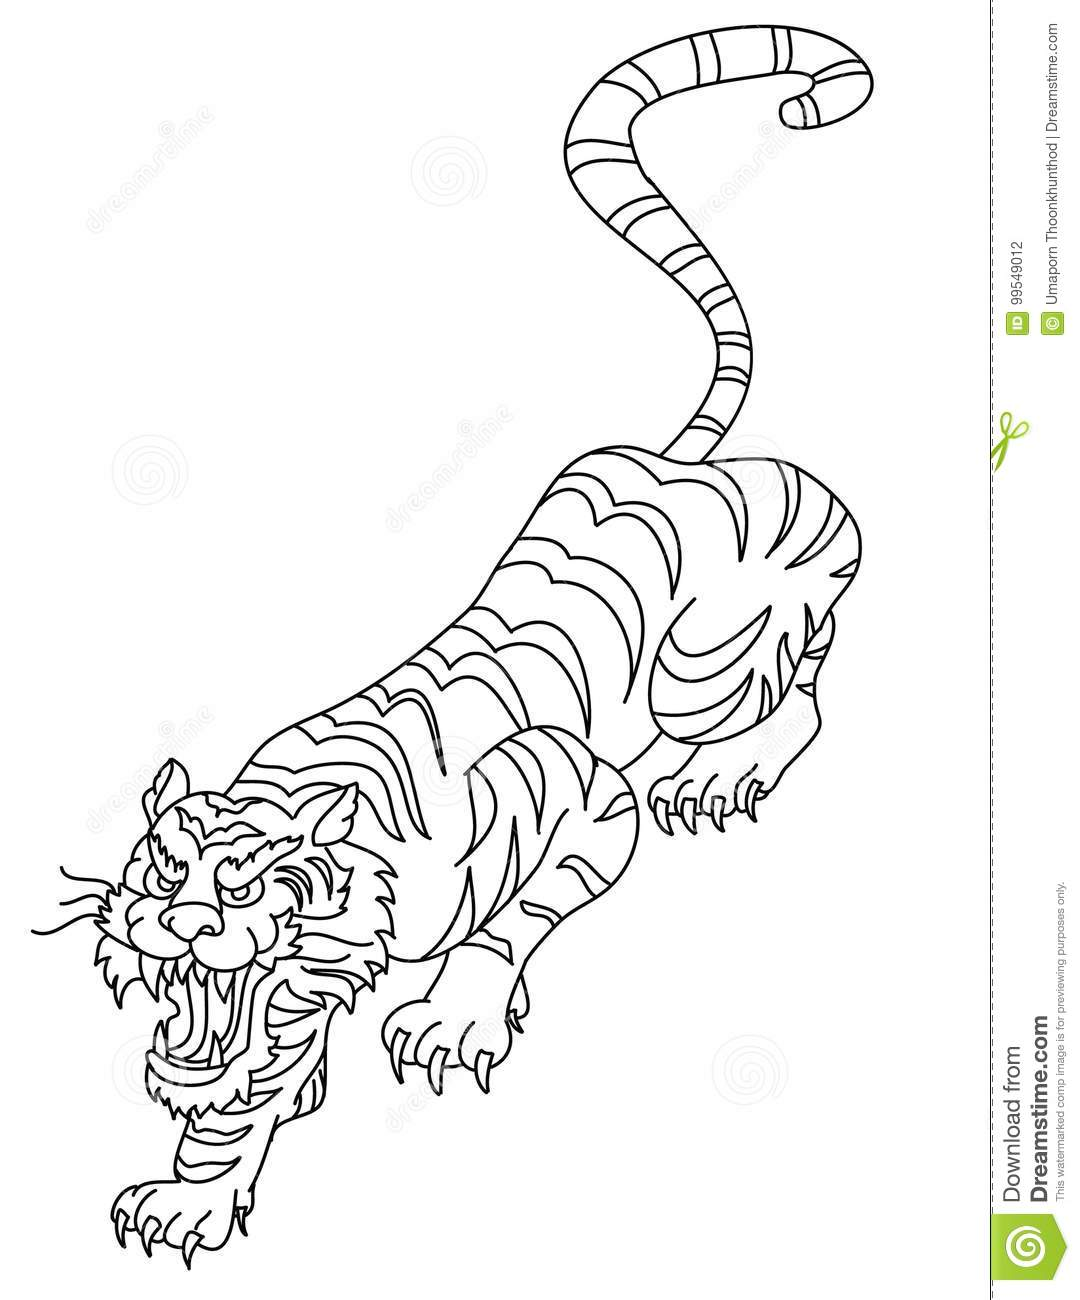 Vecteur Japonais De Conception De Tatouage De Tigre Illustration De